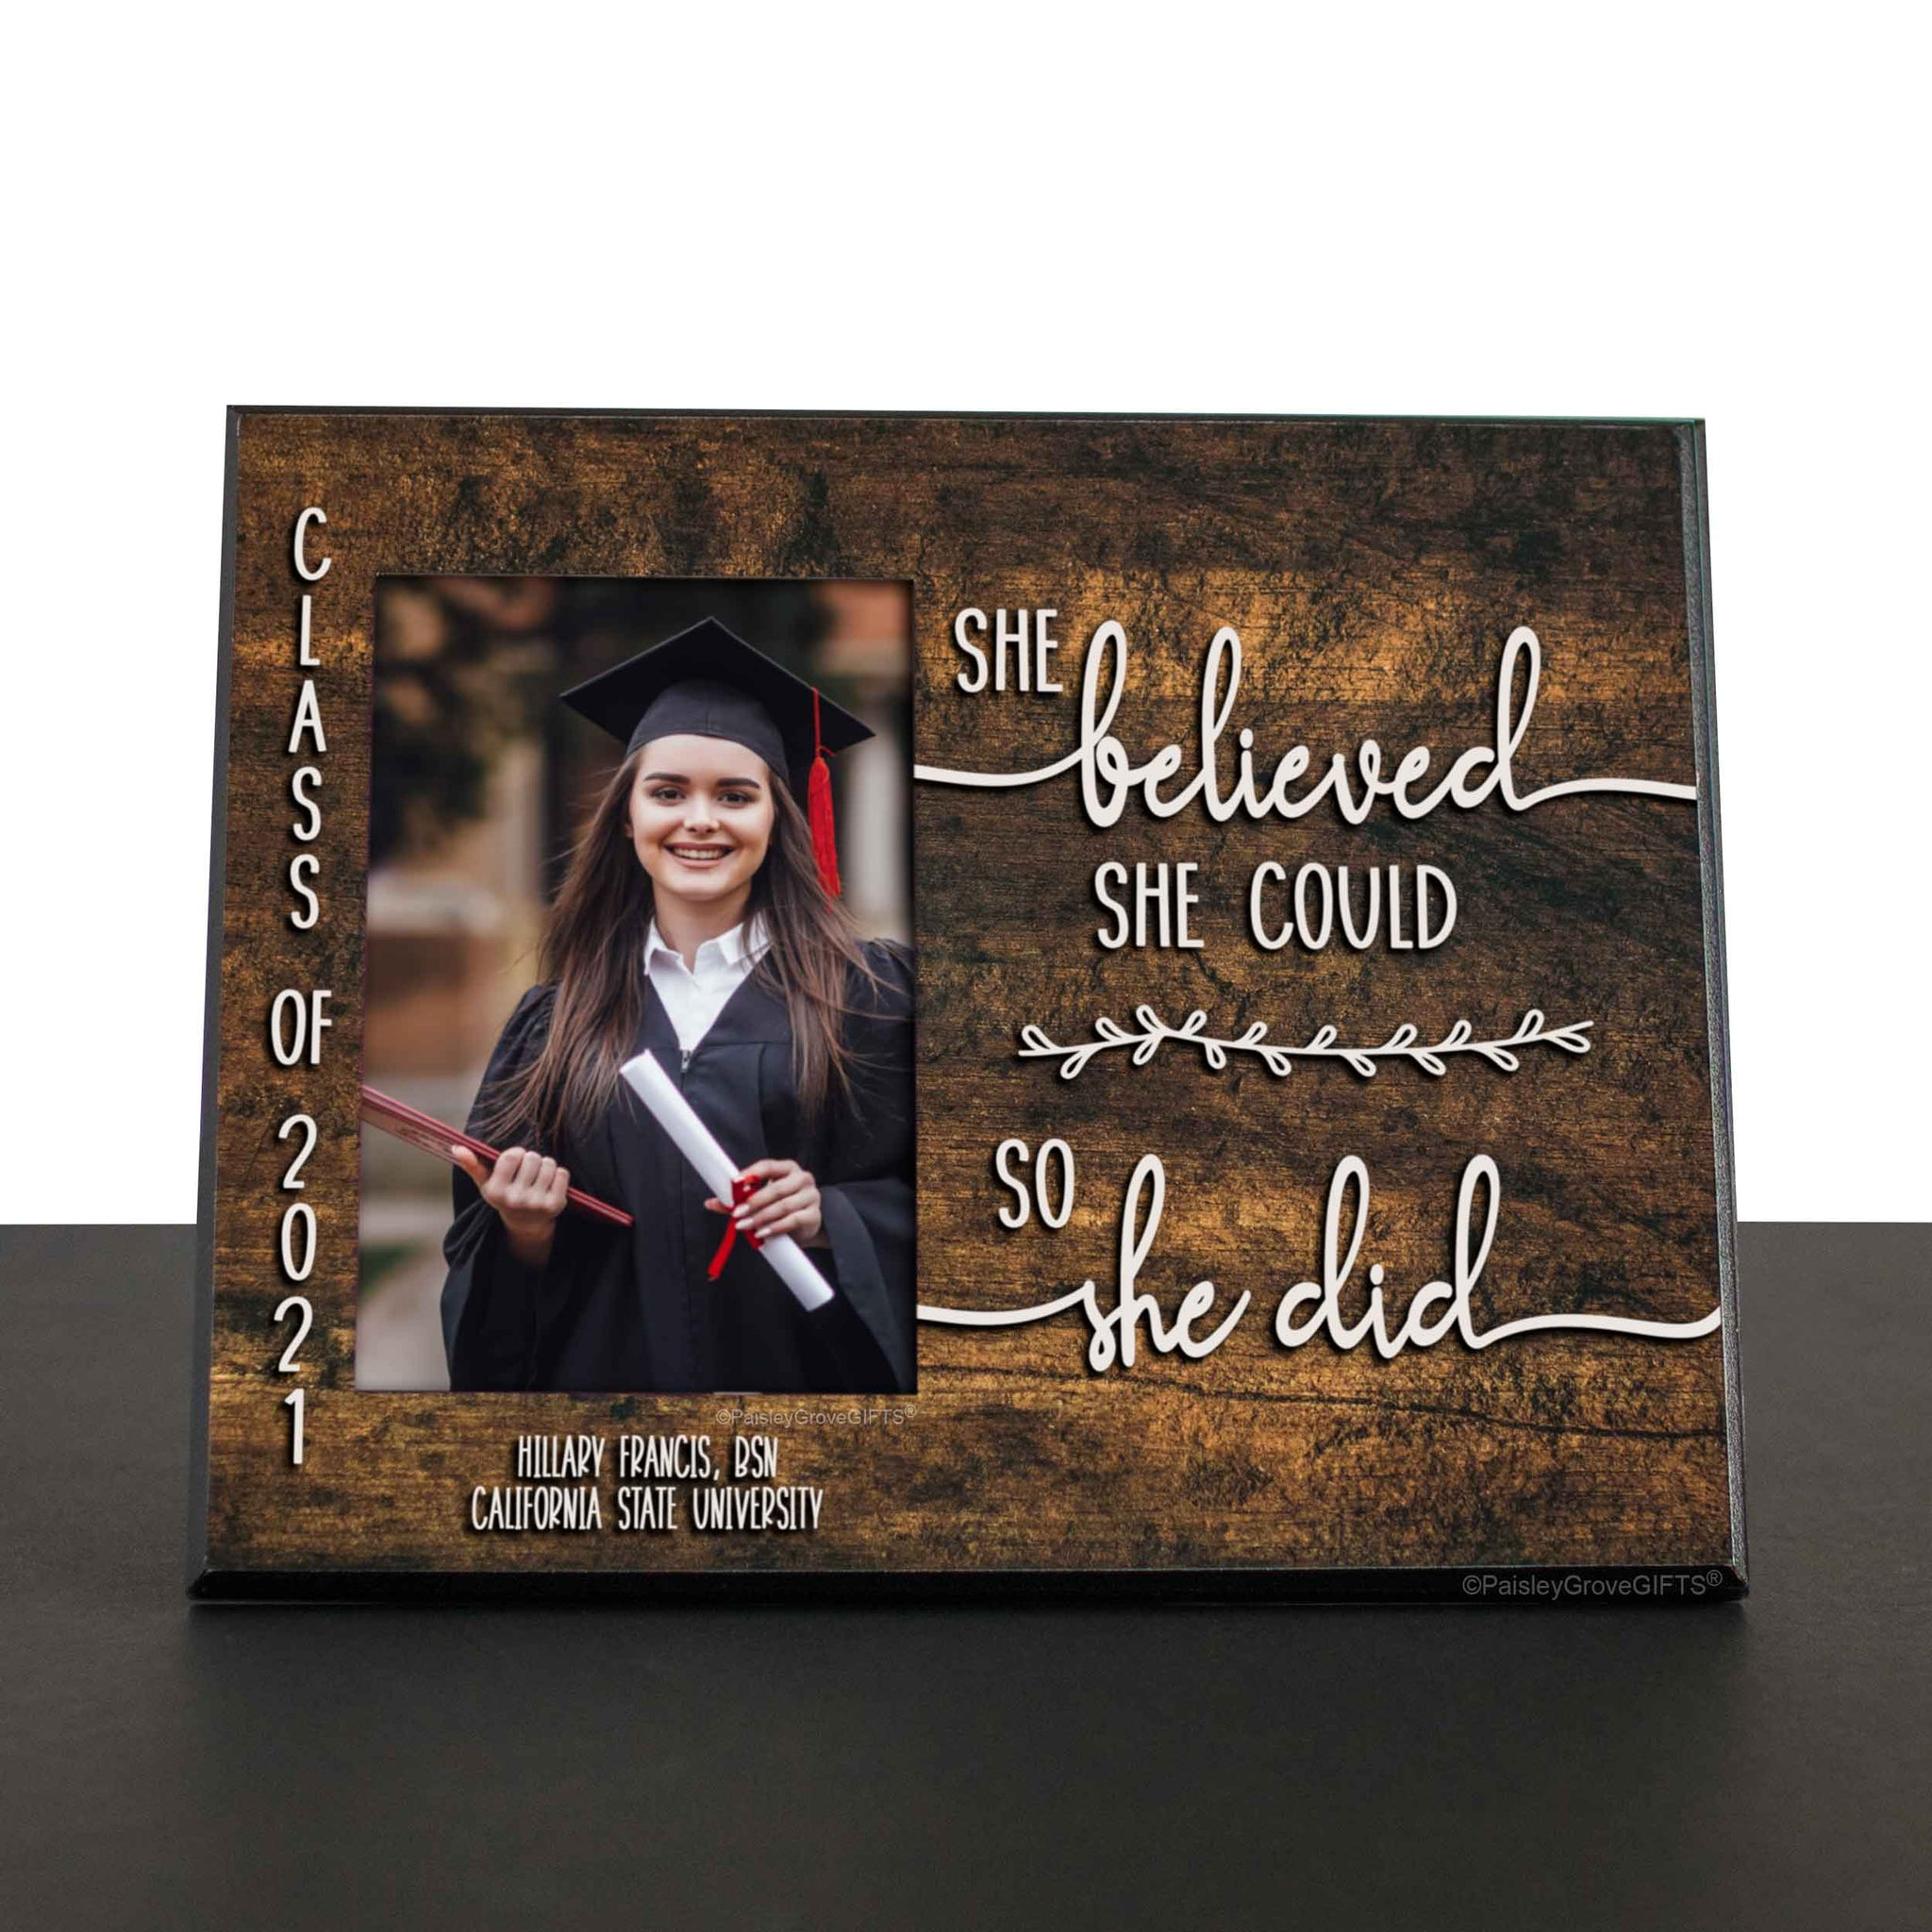 CopyrightPaisleyGroveGIFTS S226f2 Sentimental gift for graduating college seniors and high school seniors personalized gift